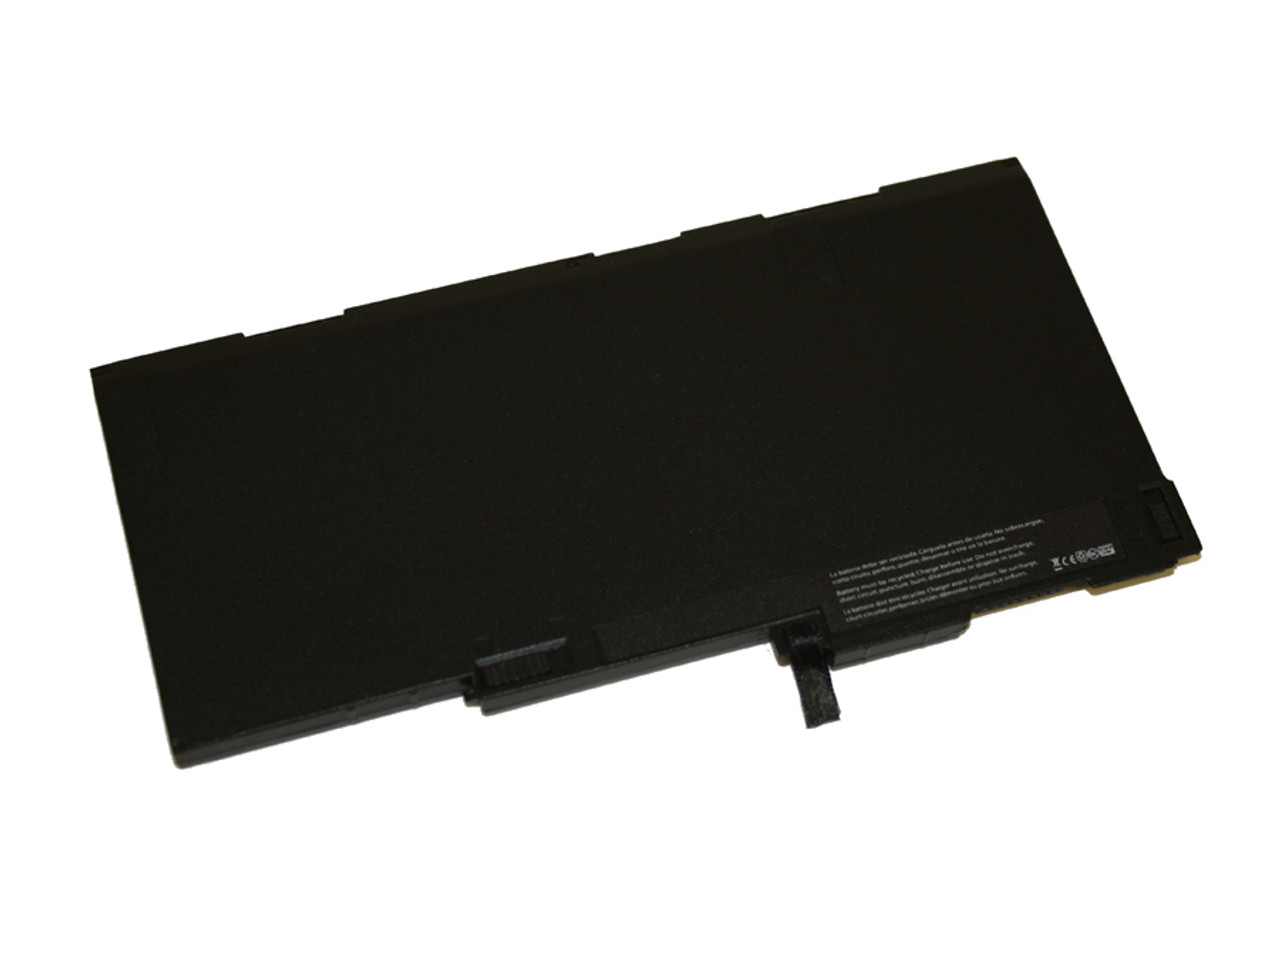 HP Elitebook 850 G1 850 G2 755 G2 battery